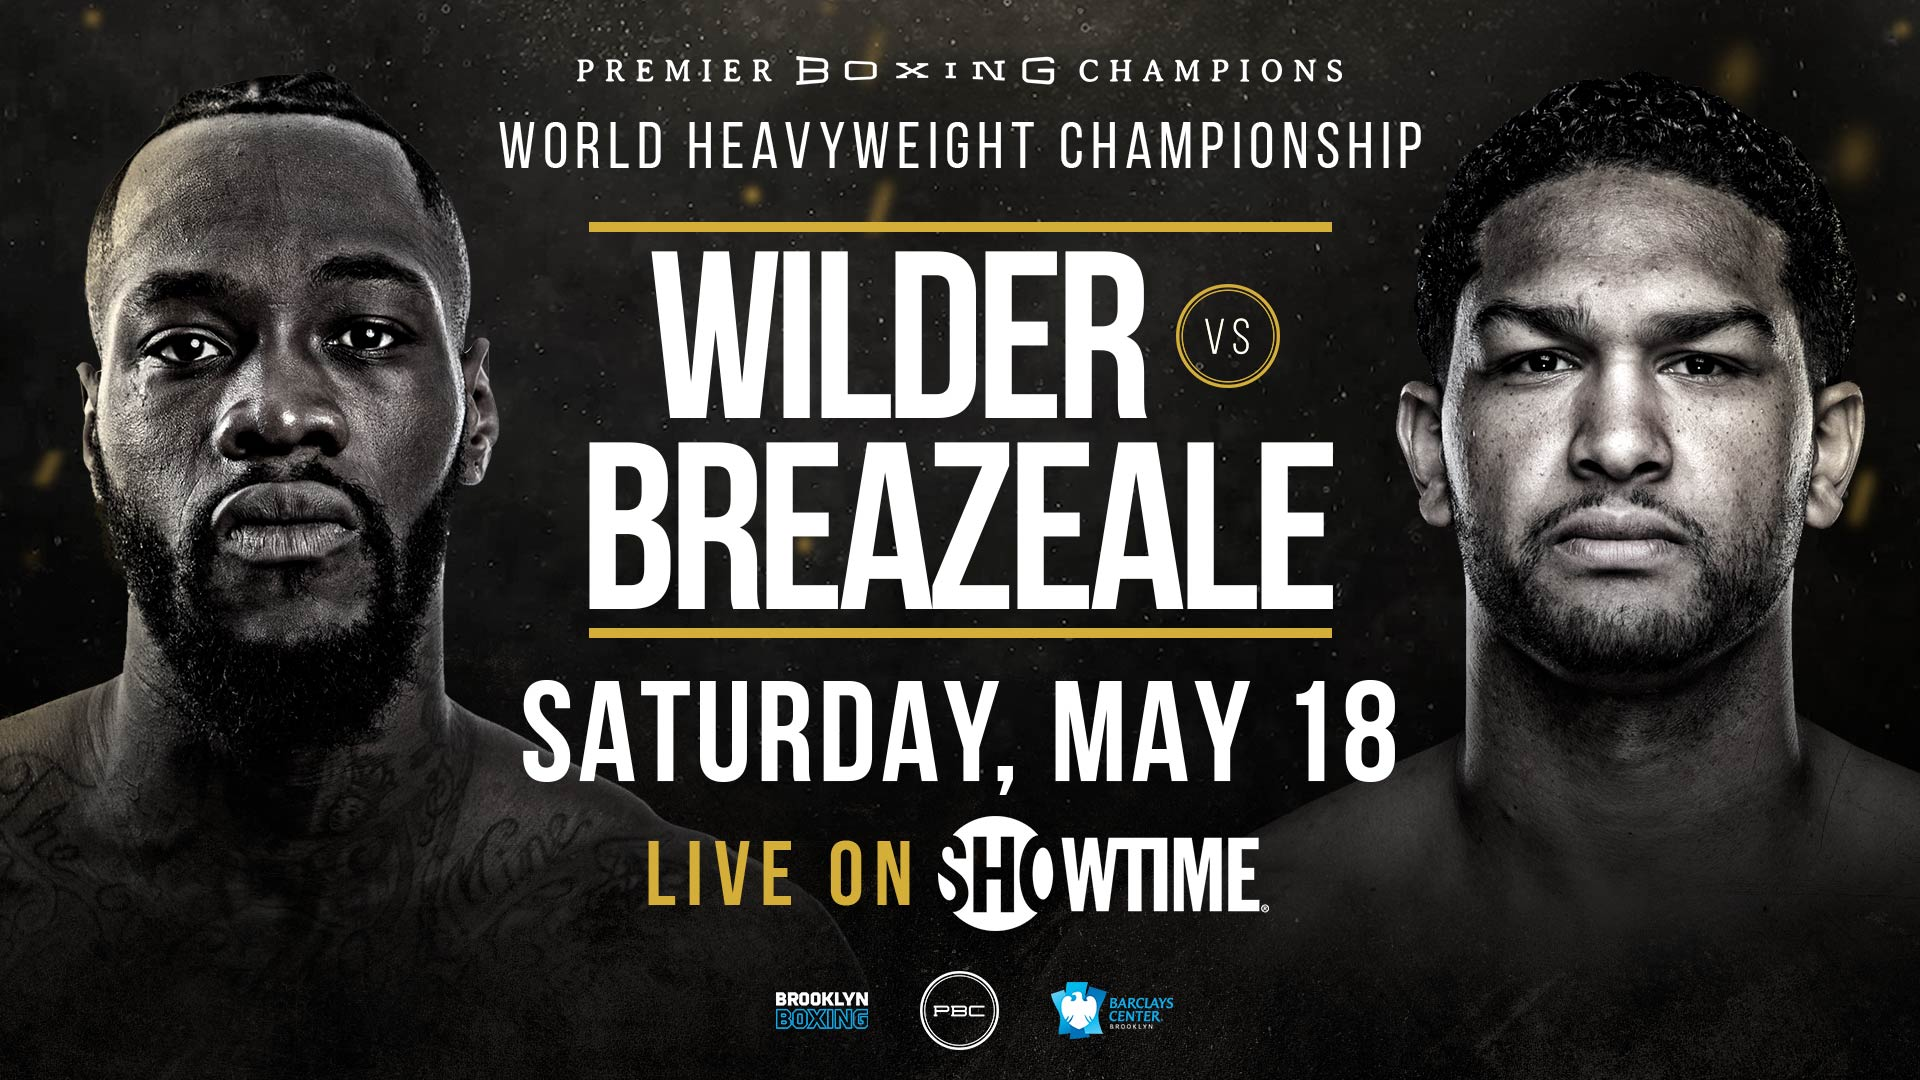 Tyson Fury vs Deontay Wilder weigh-in LIVE STREAM: Watch online tonight